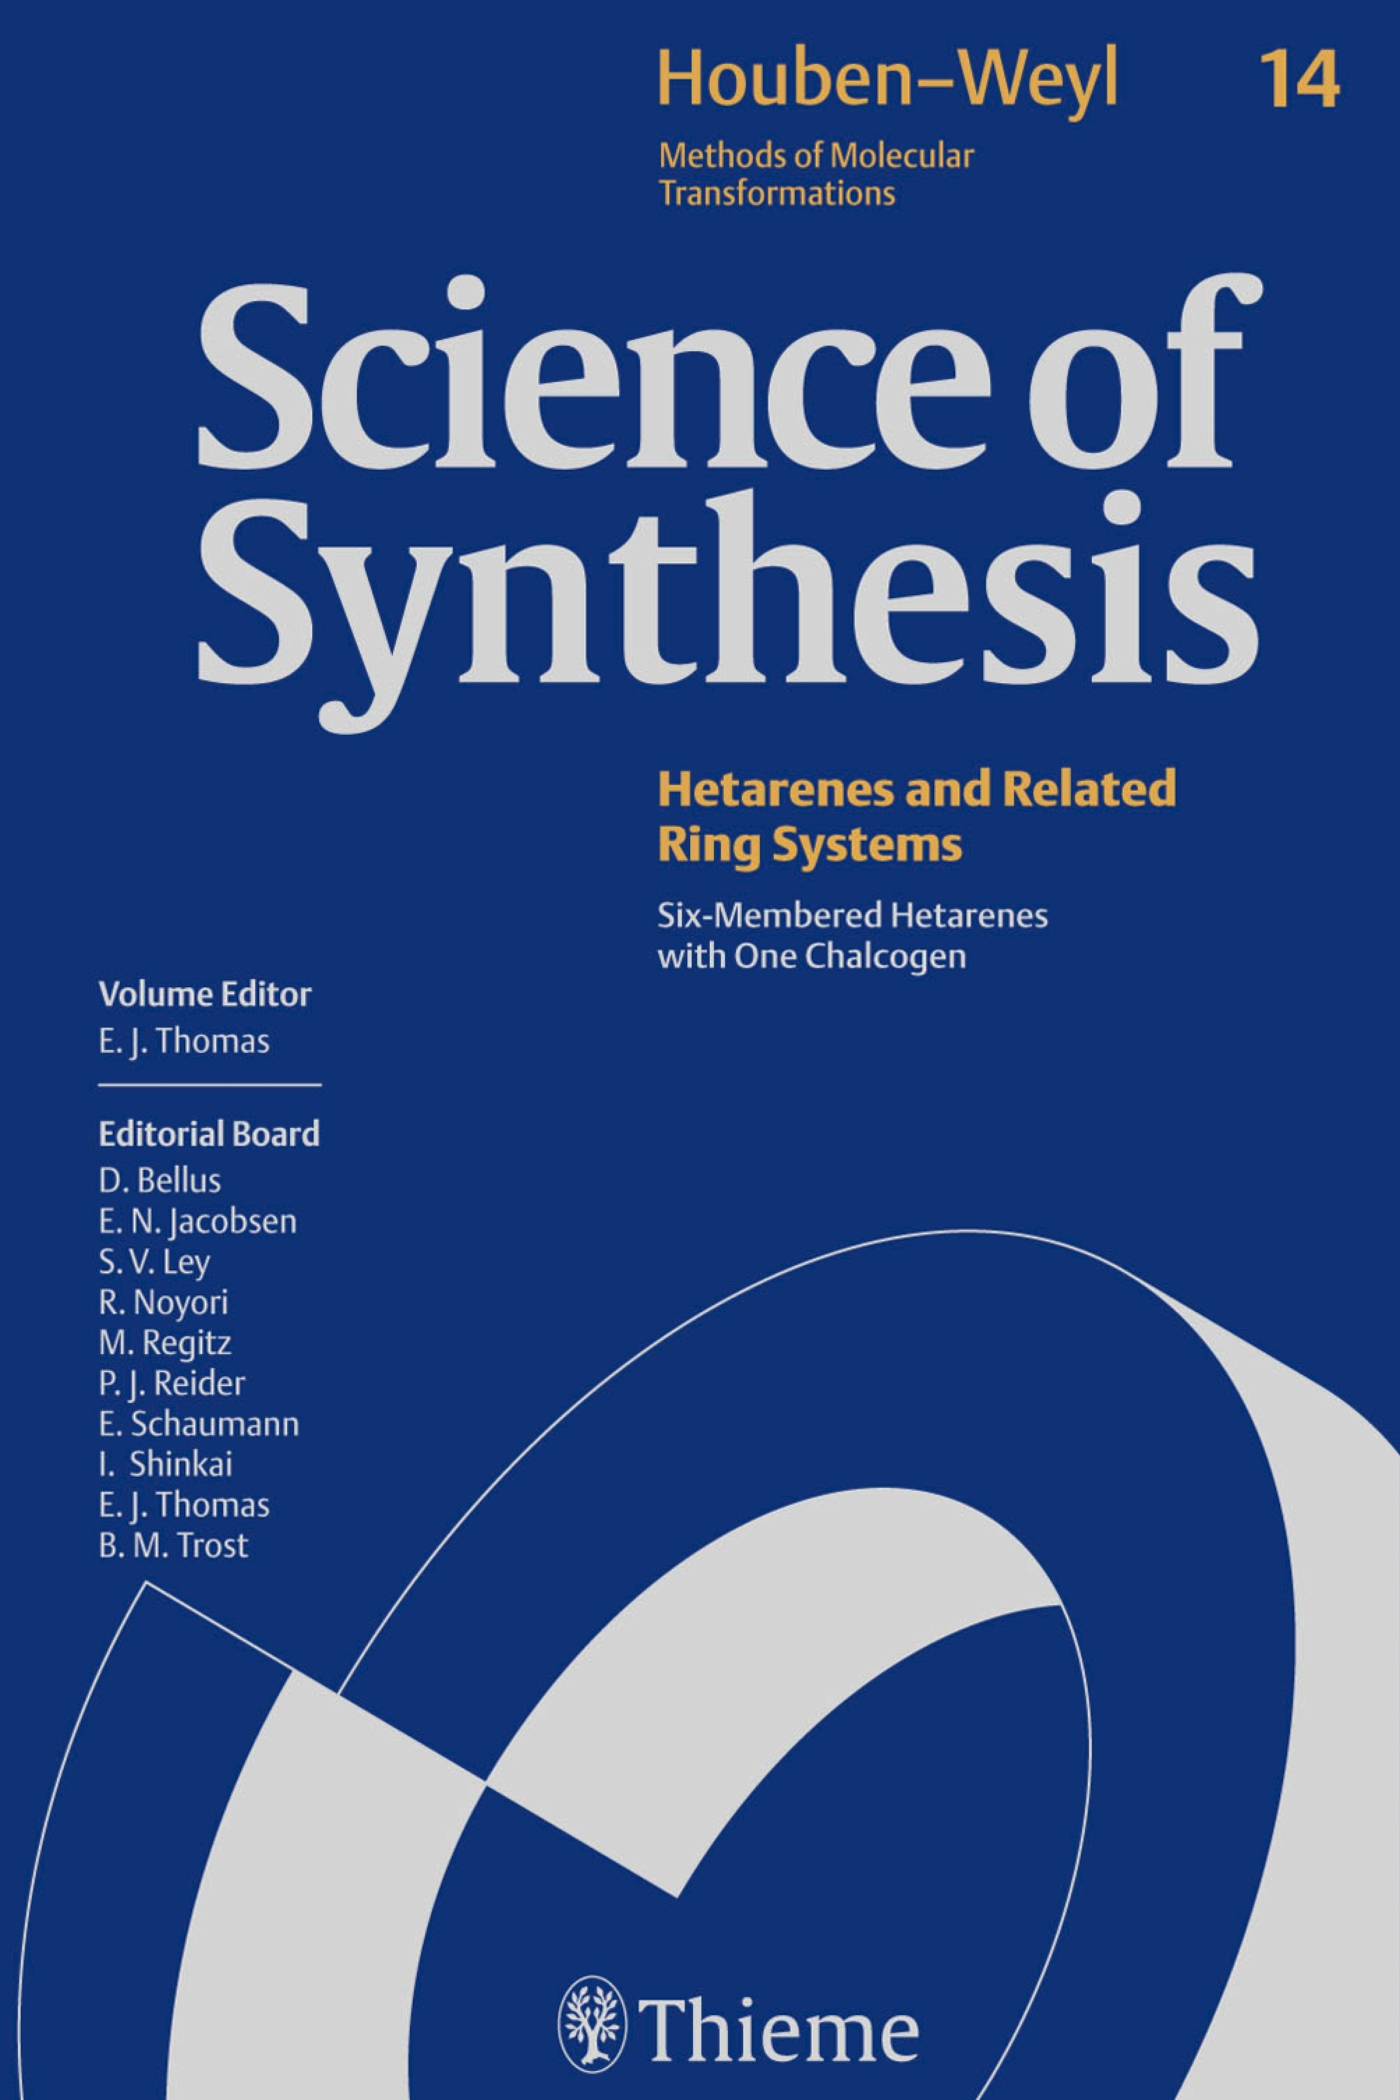 Science of Synthesis: Houben-Weyl Methods of Molecular Transformations Vol. 14